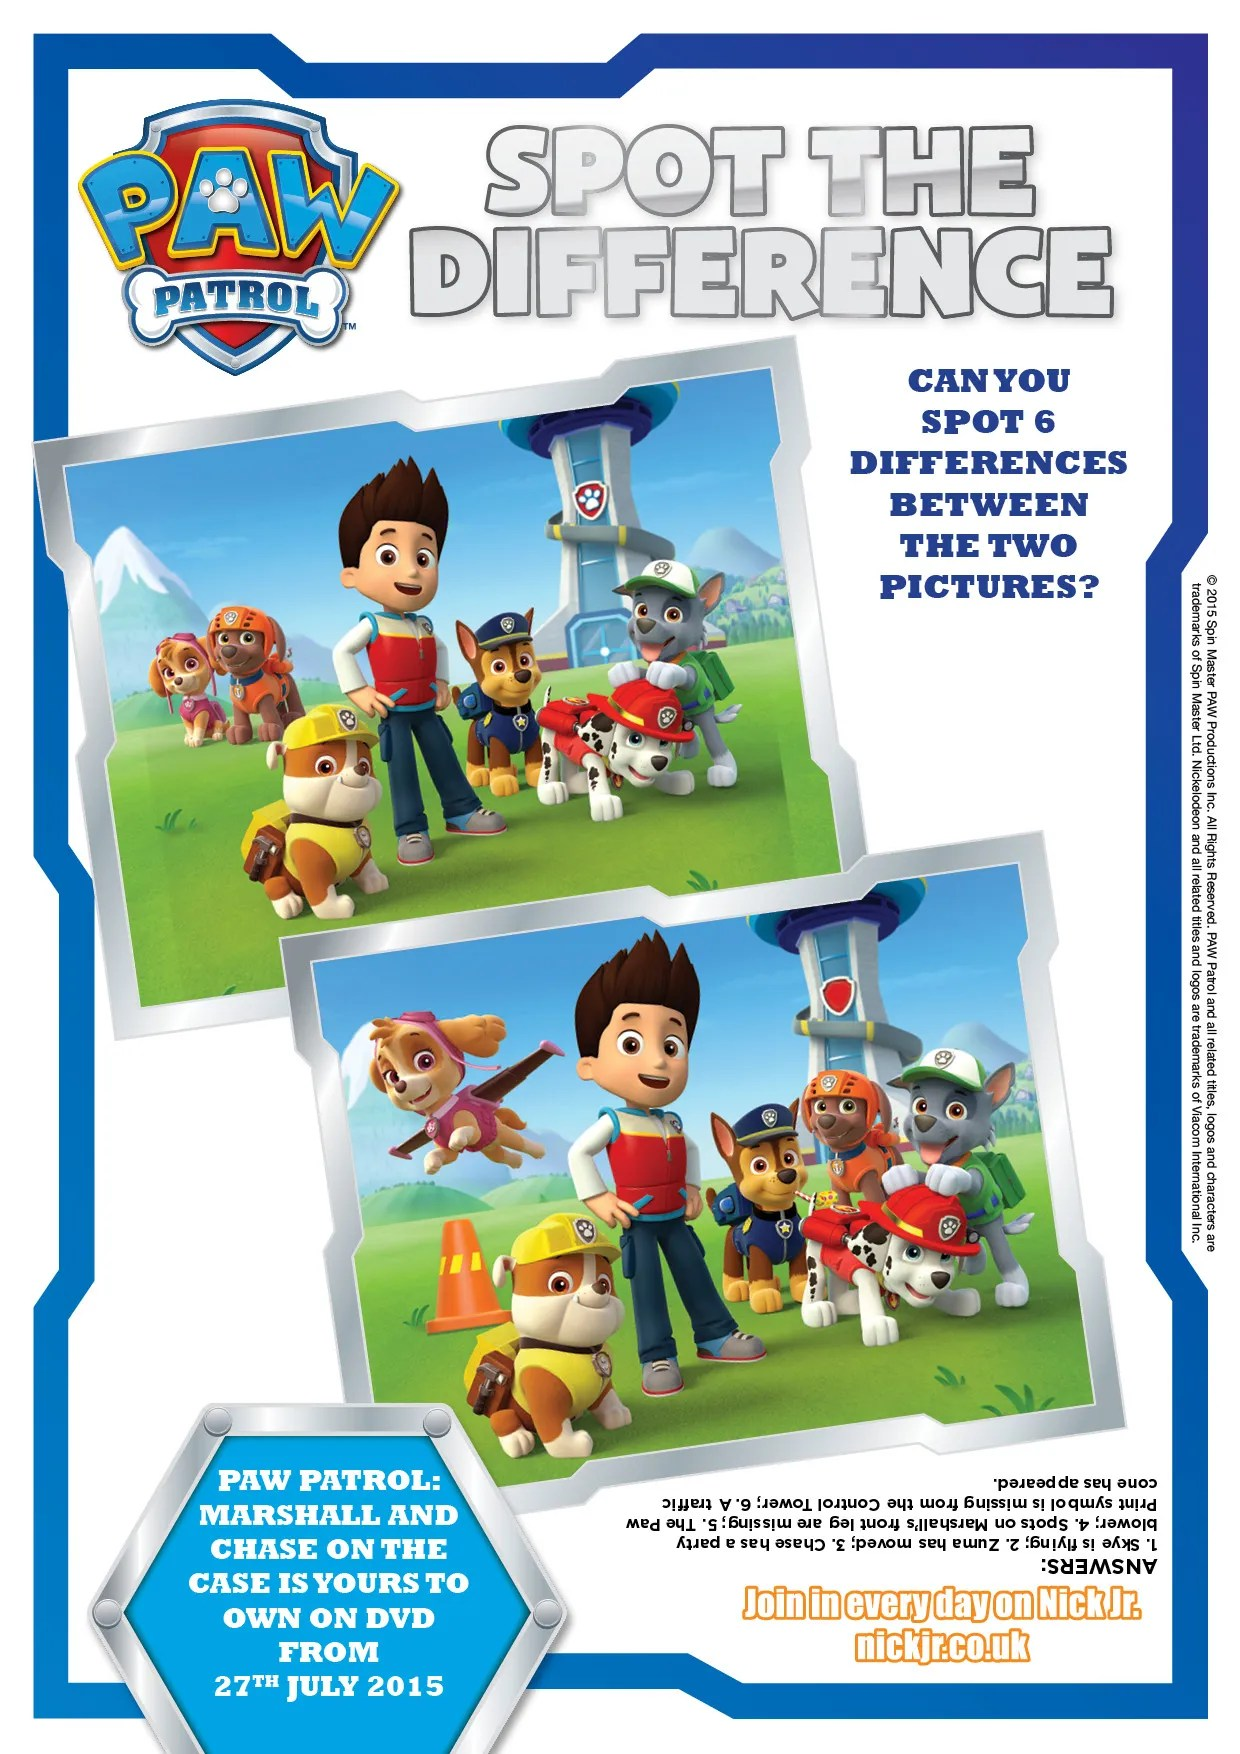 Paw patrol spot the difference activity page printable